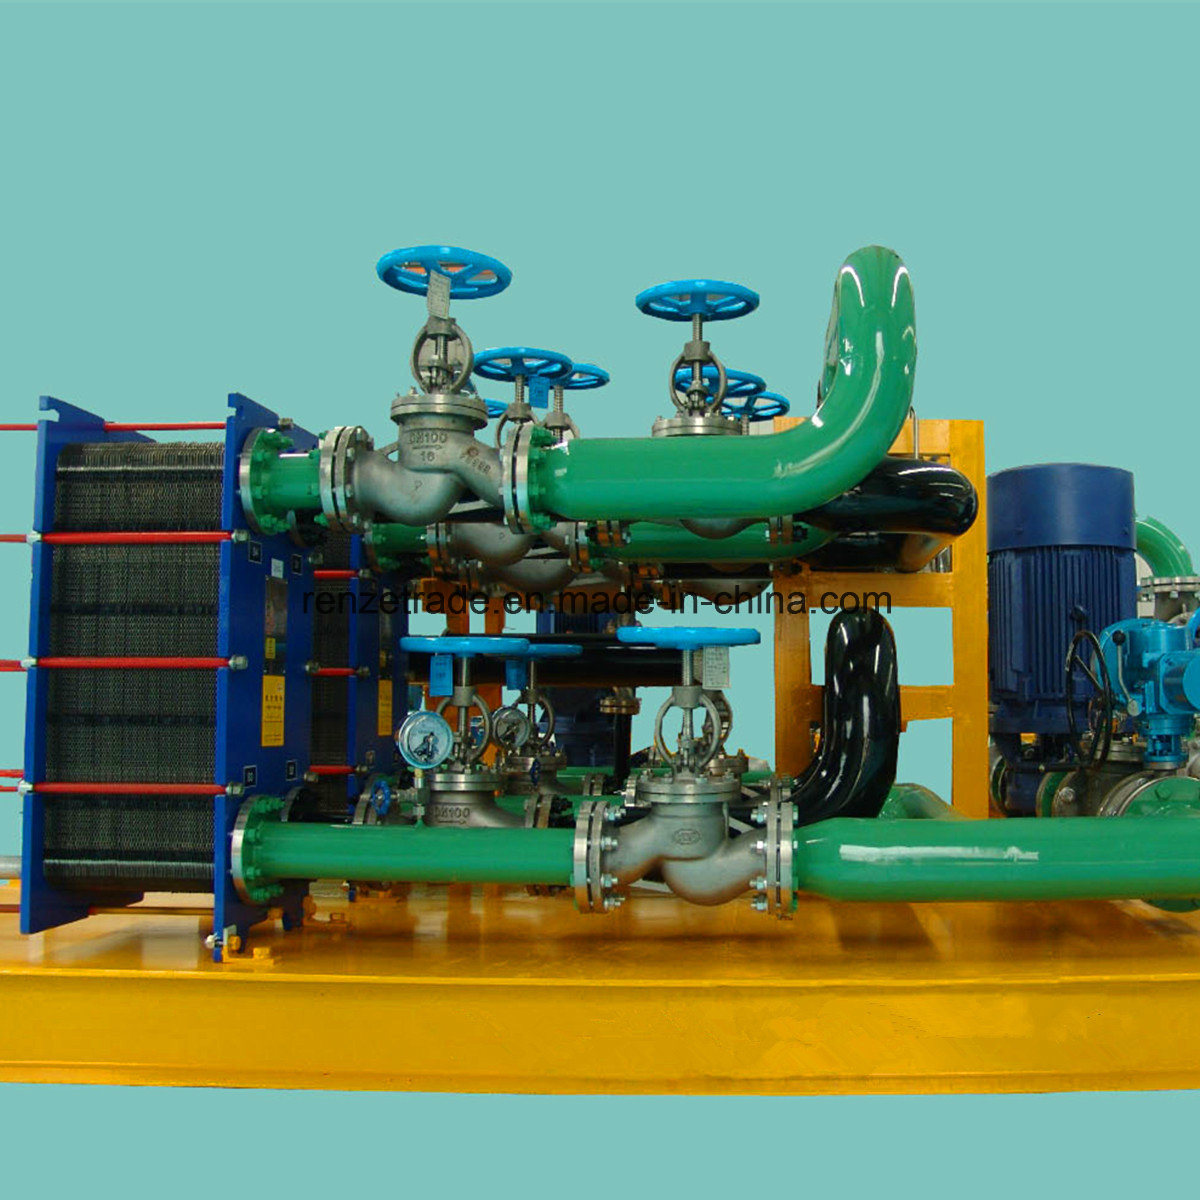 Steel Industry, Paper Making Industry Gasketed Plate Heat Exchanger Replacement for Alfa Laval